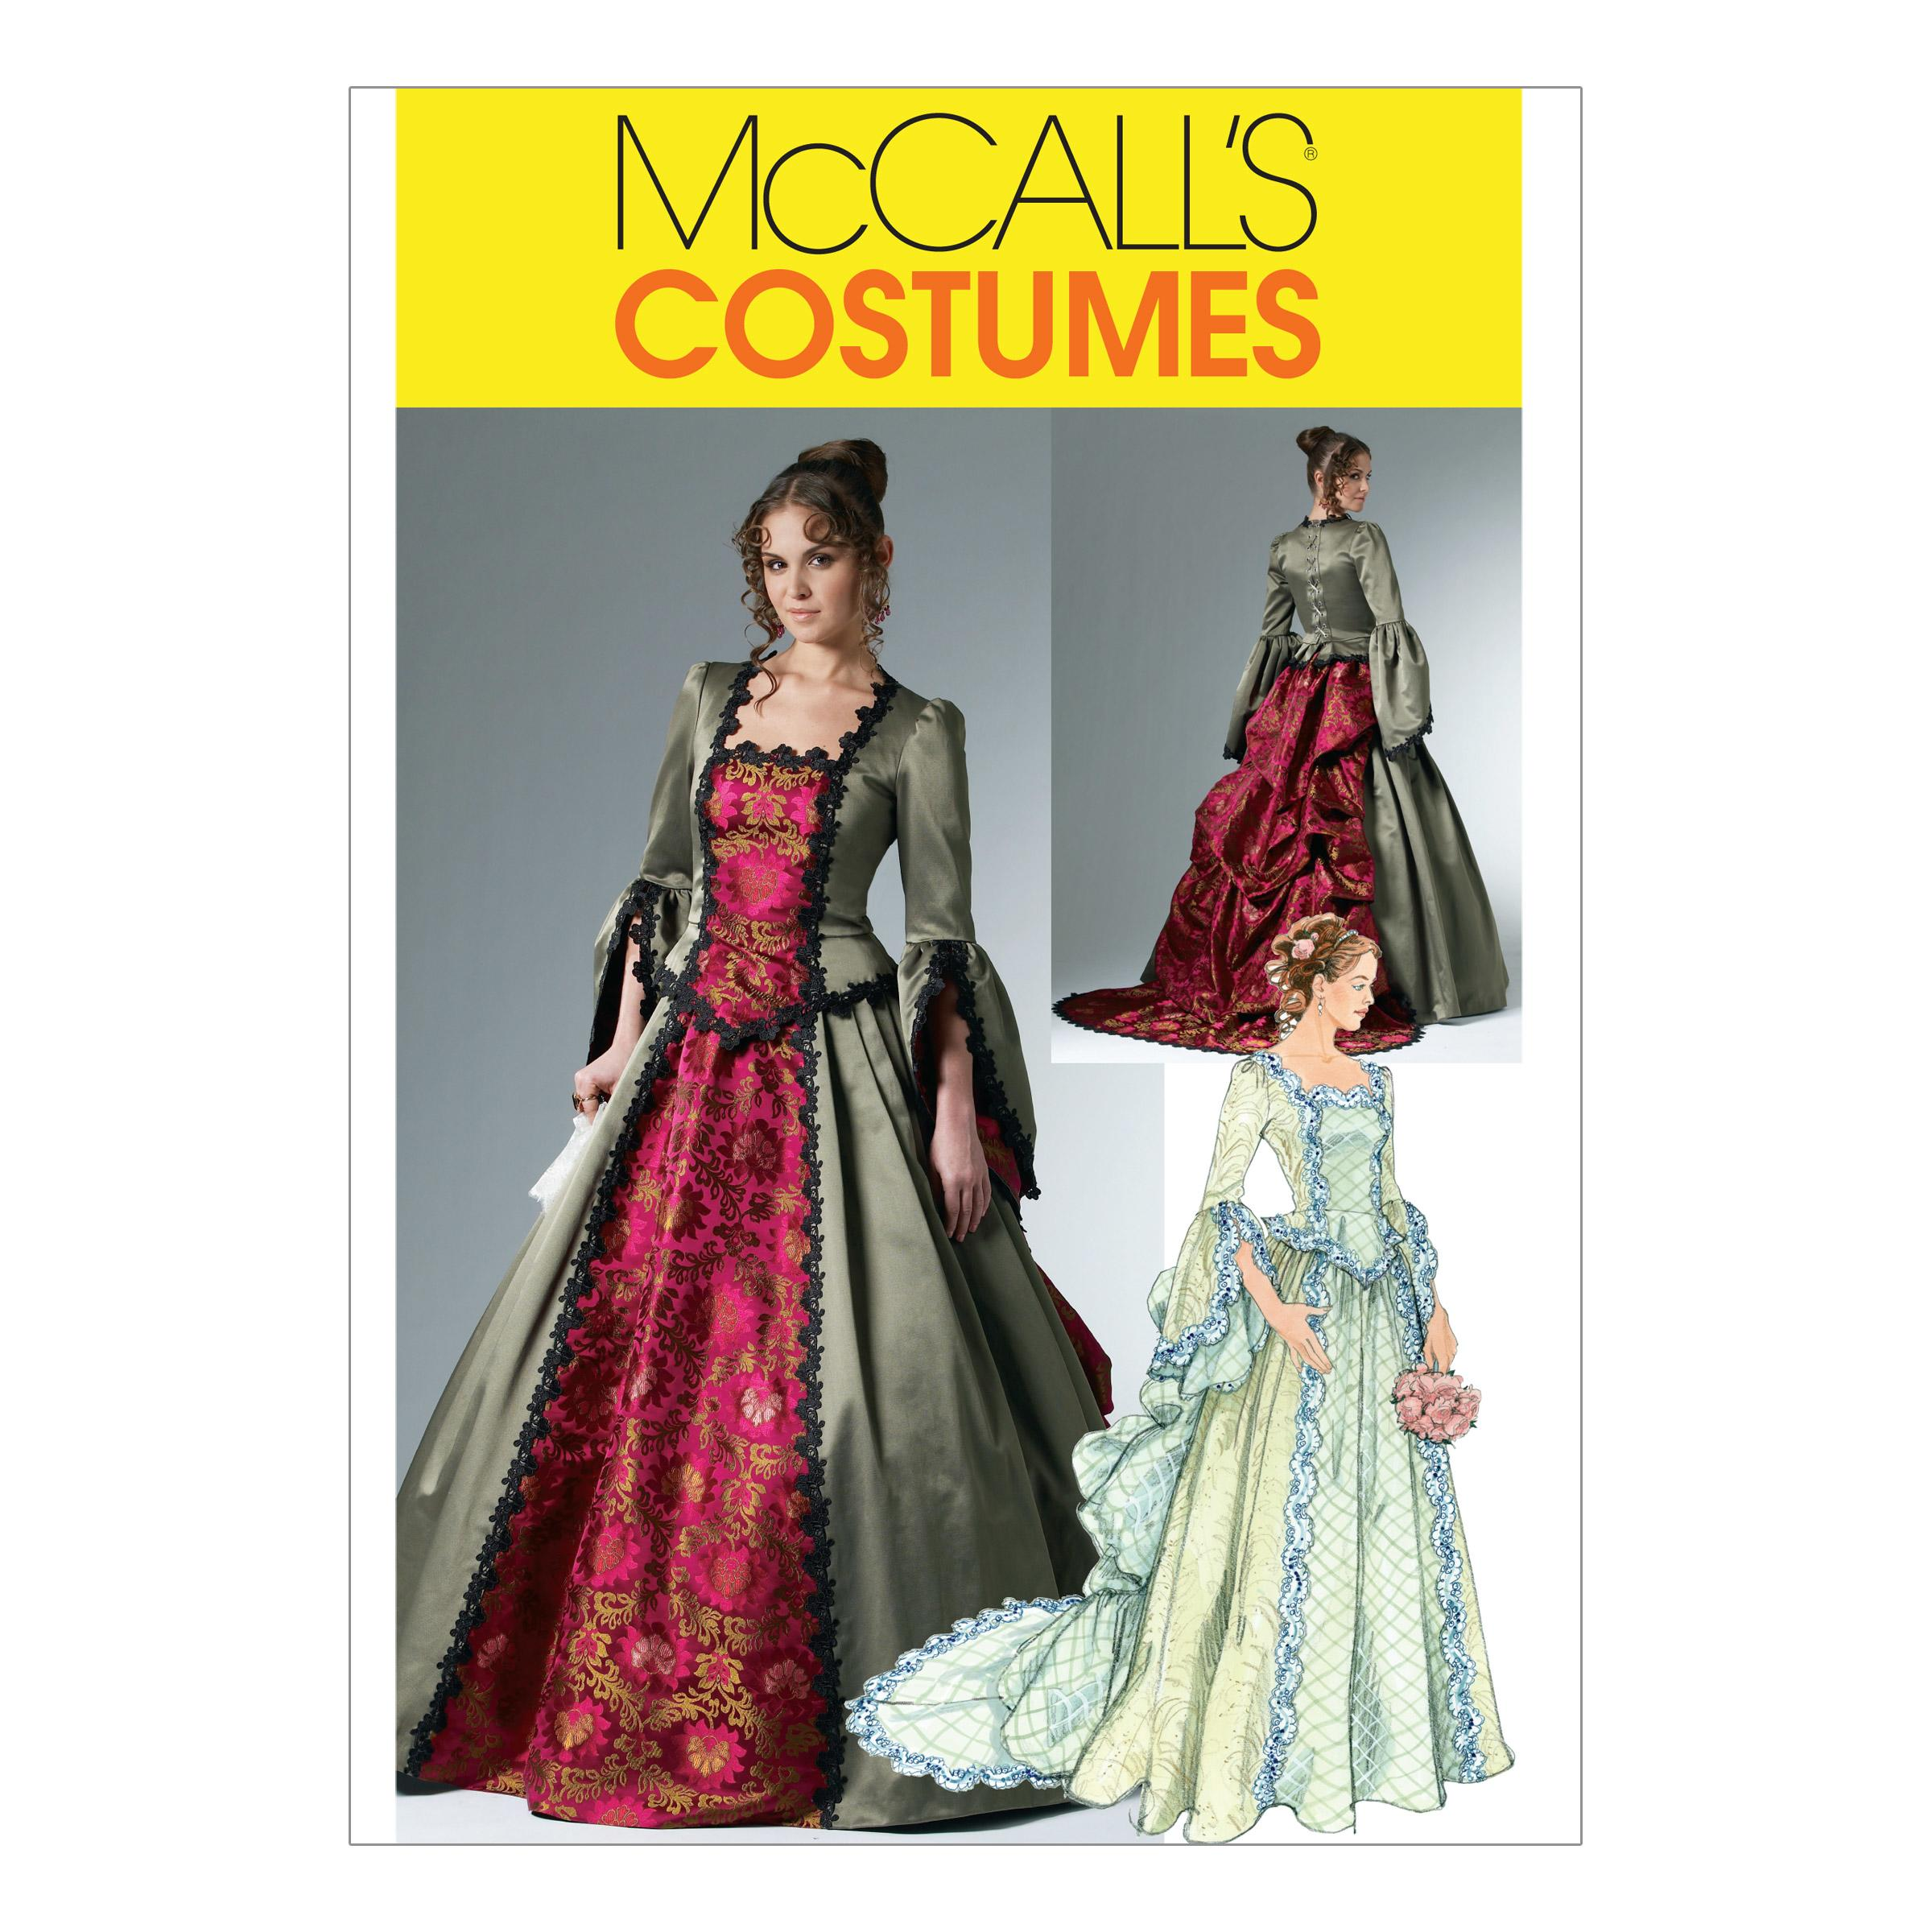 McCalls M6097 Costumes, Halloween, Skirts, Bustles & Petticoats, Tops, Shirts & Tunics